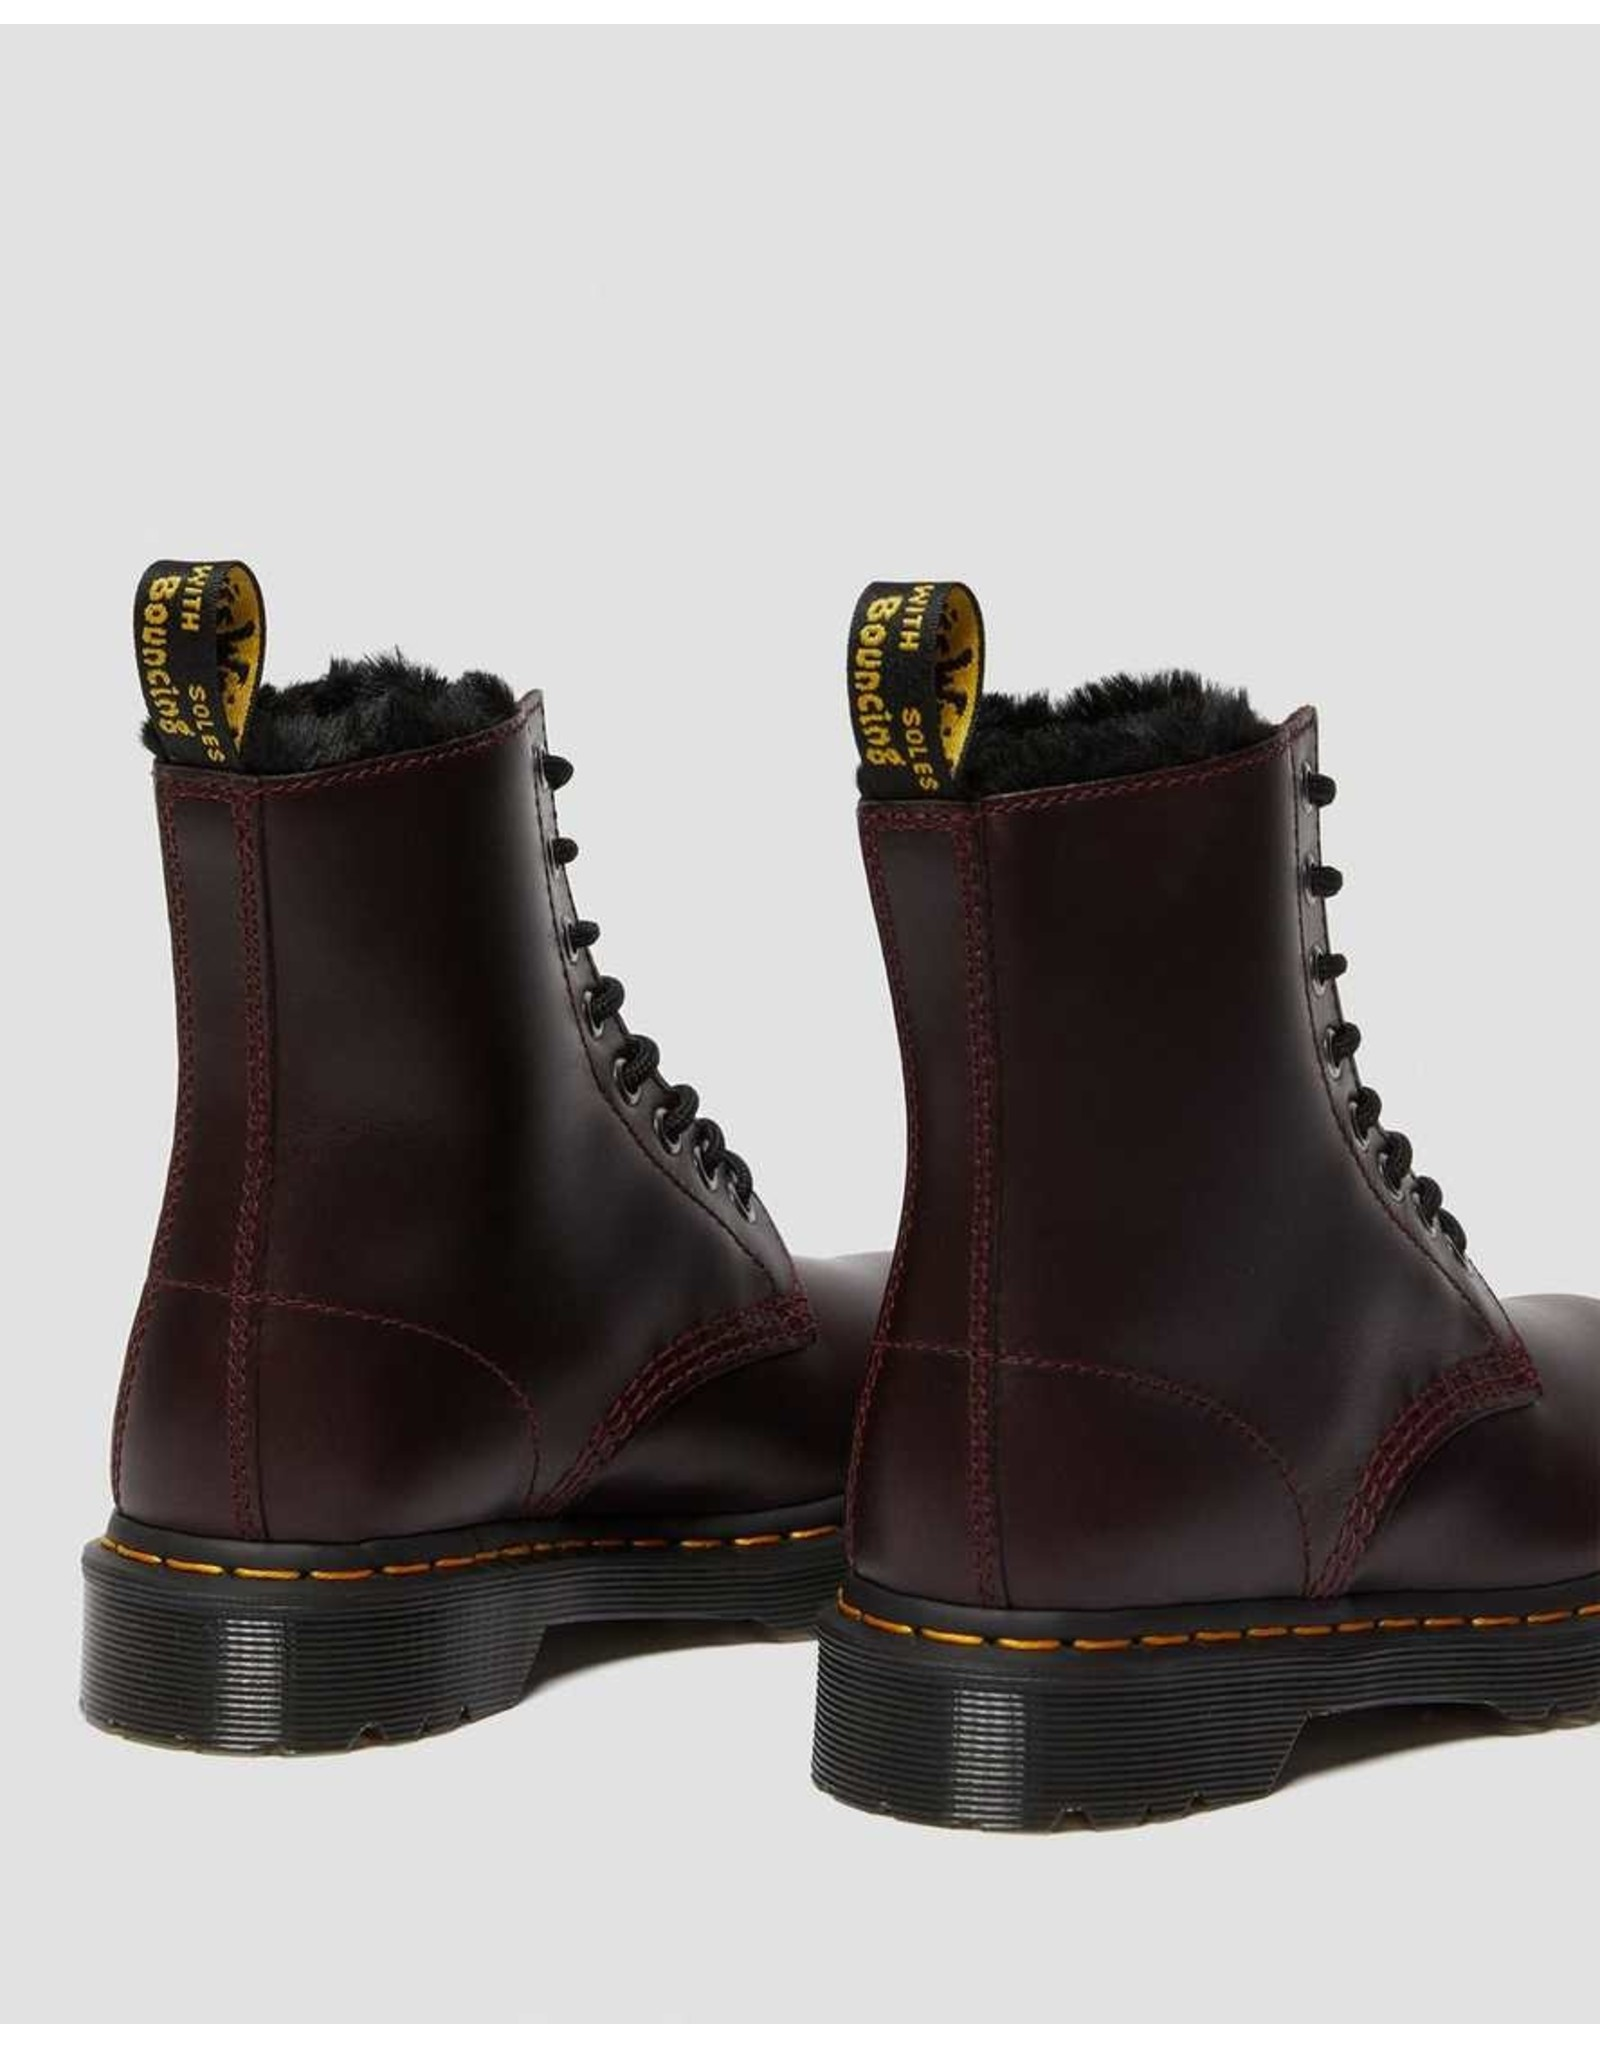 DR. MARTENS 1460 SERENA WINTER BOOT